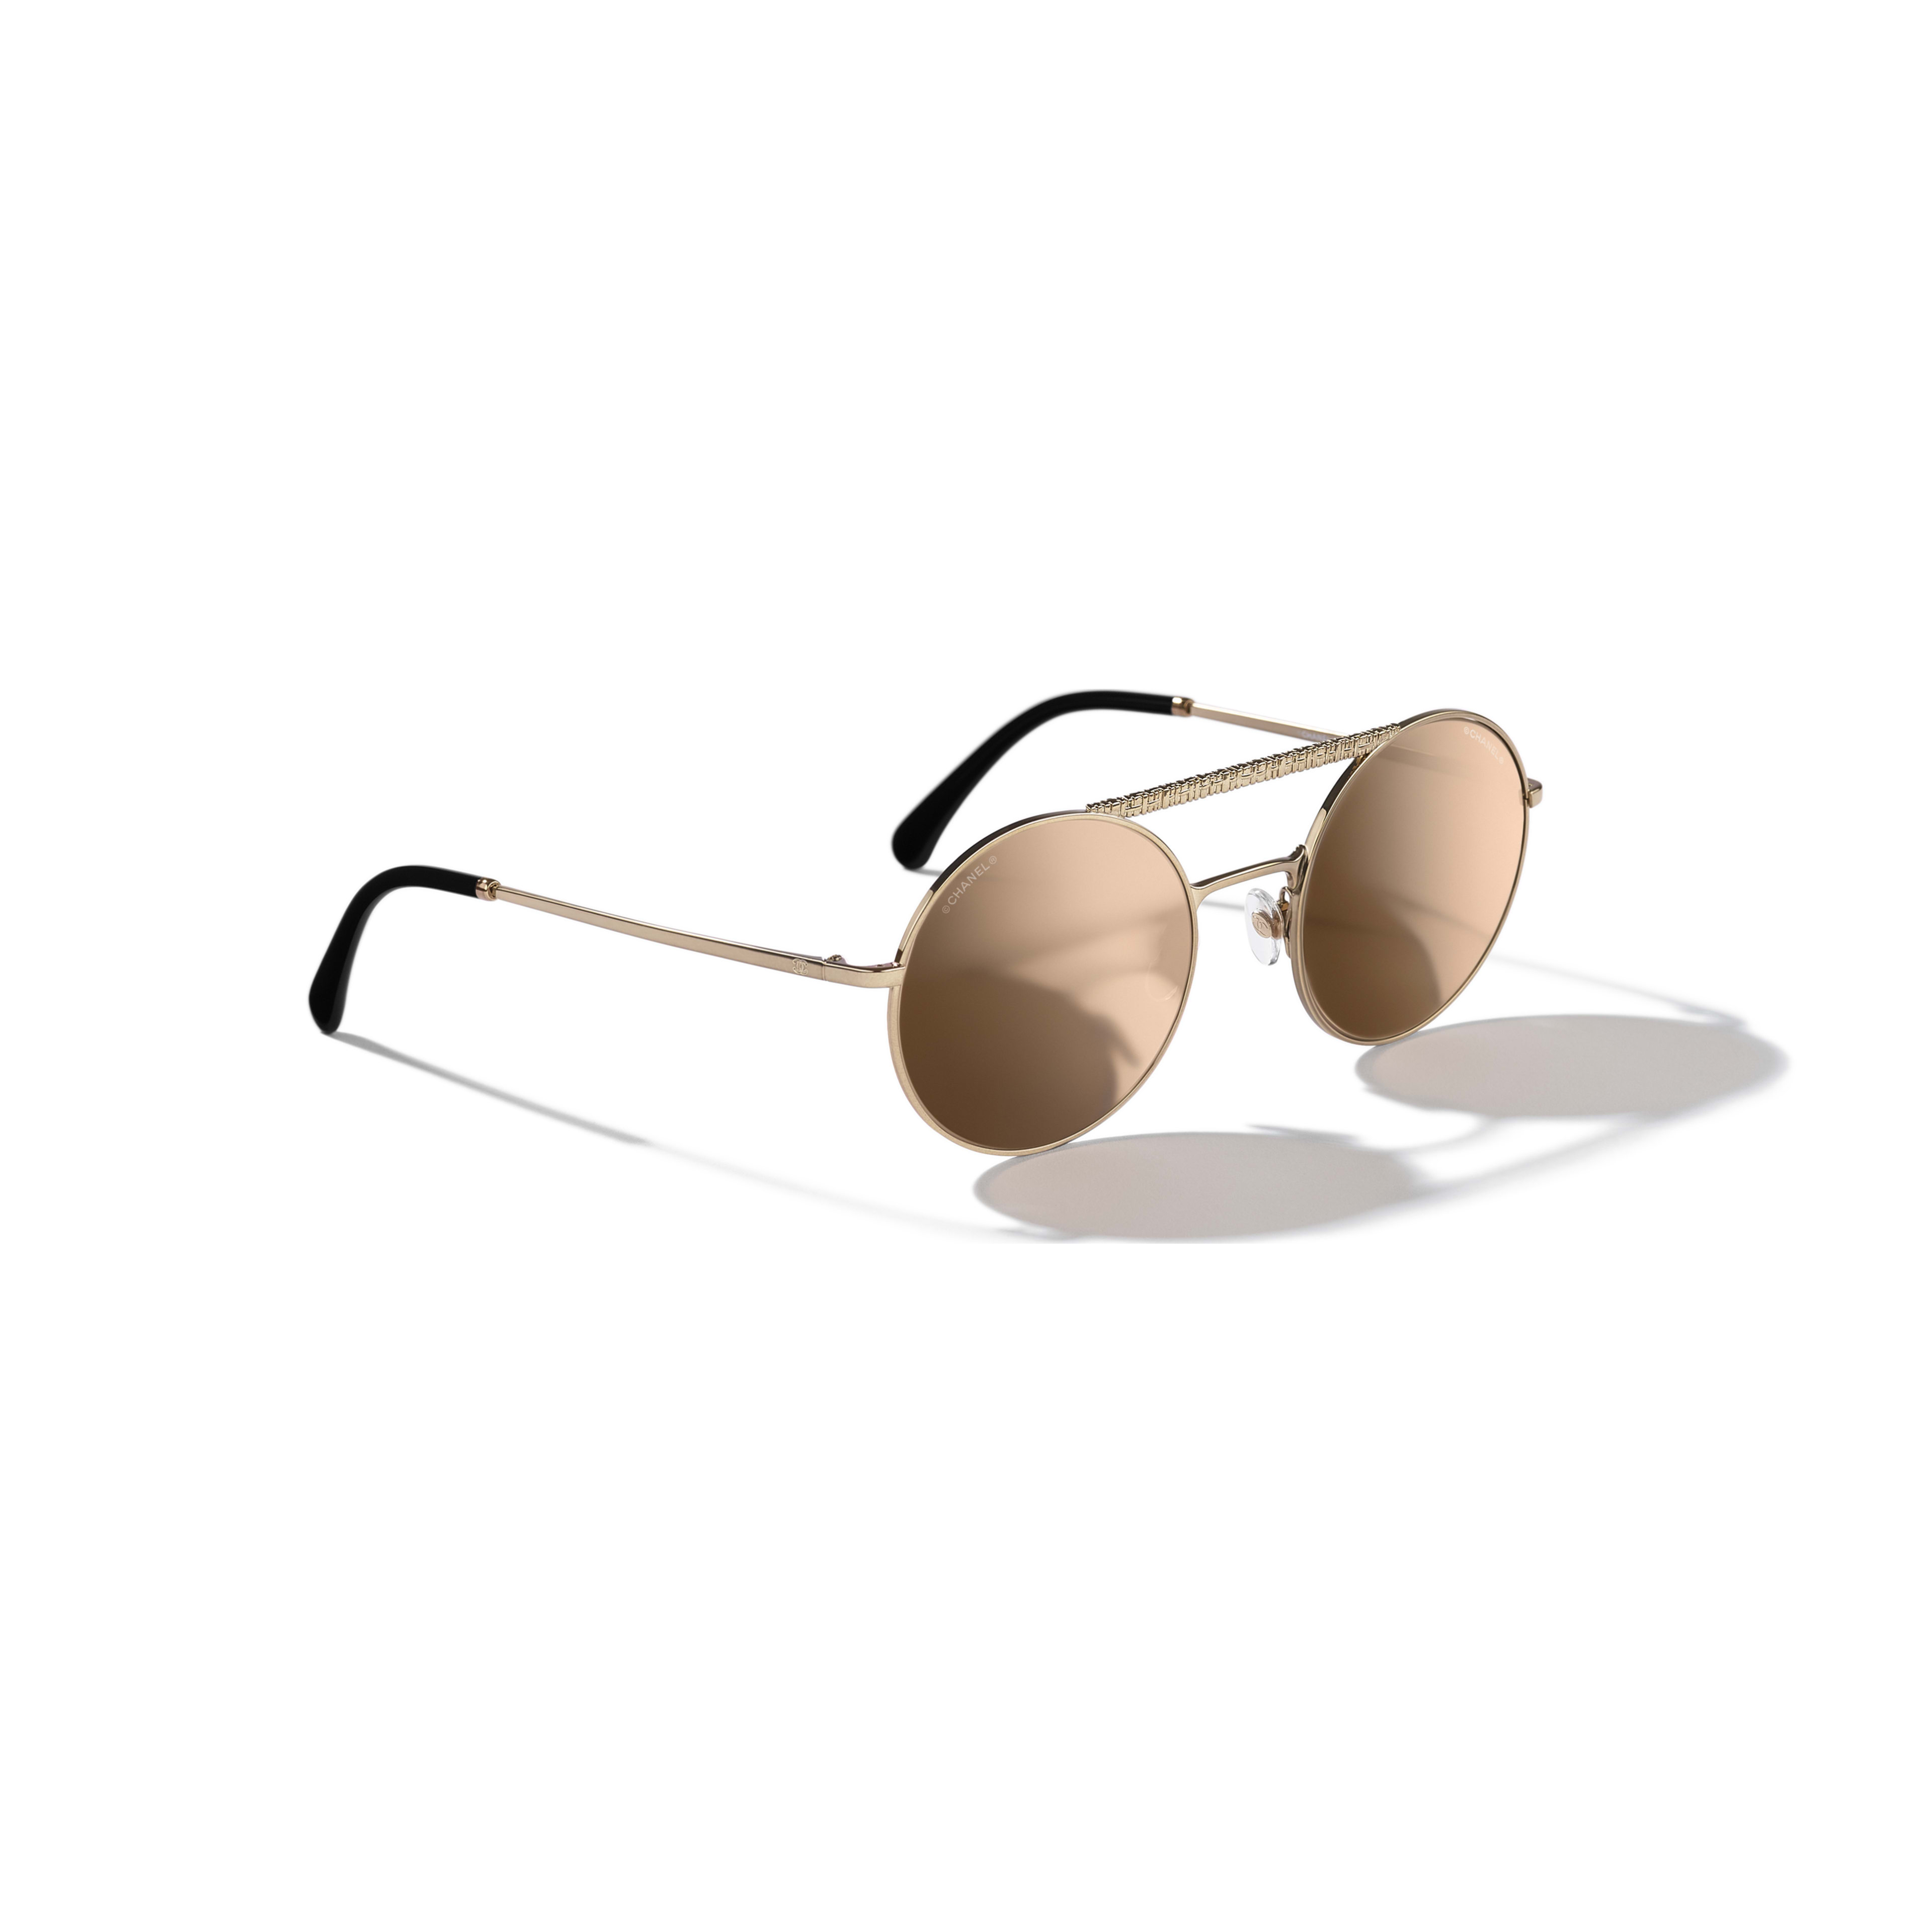 Round Sunglasses - Gold - Metal - Extra view - see full sized version